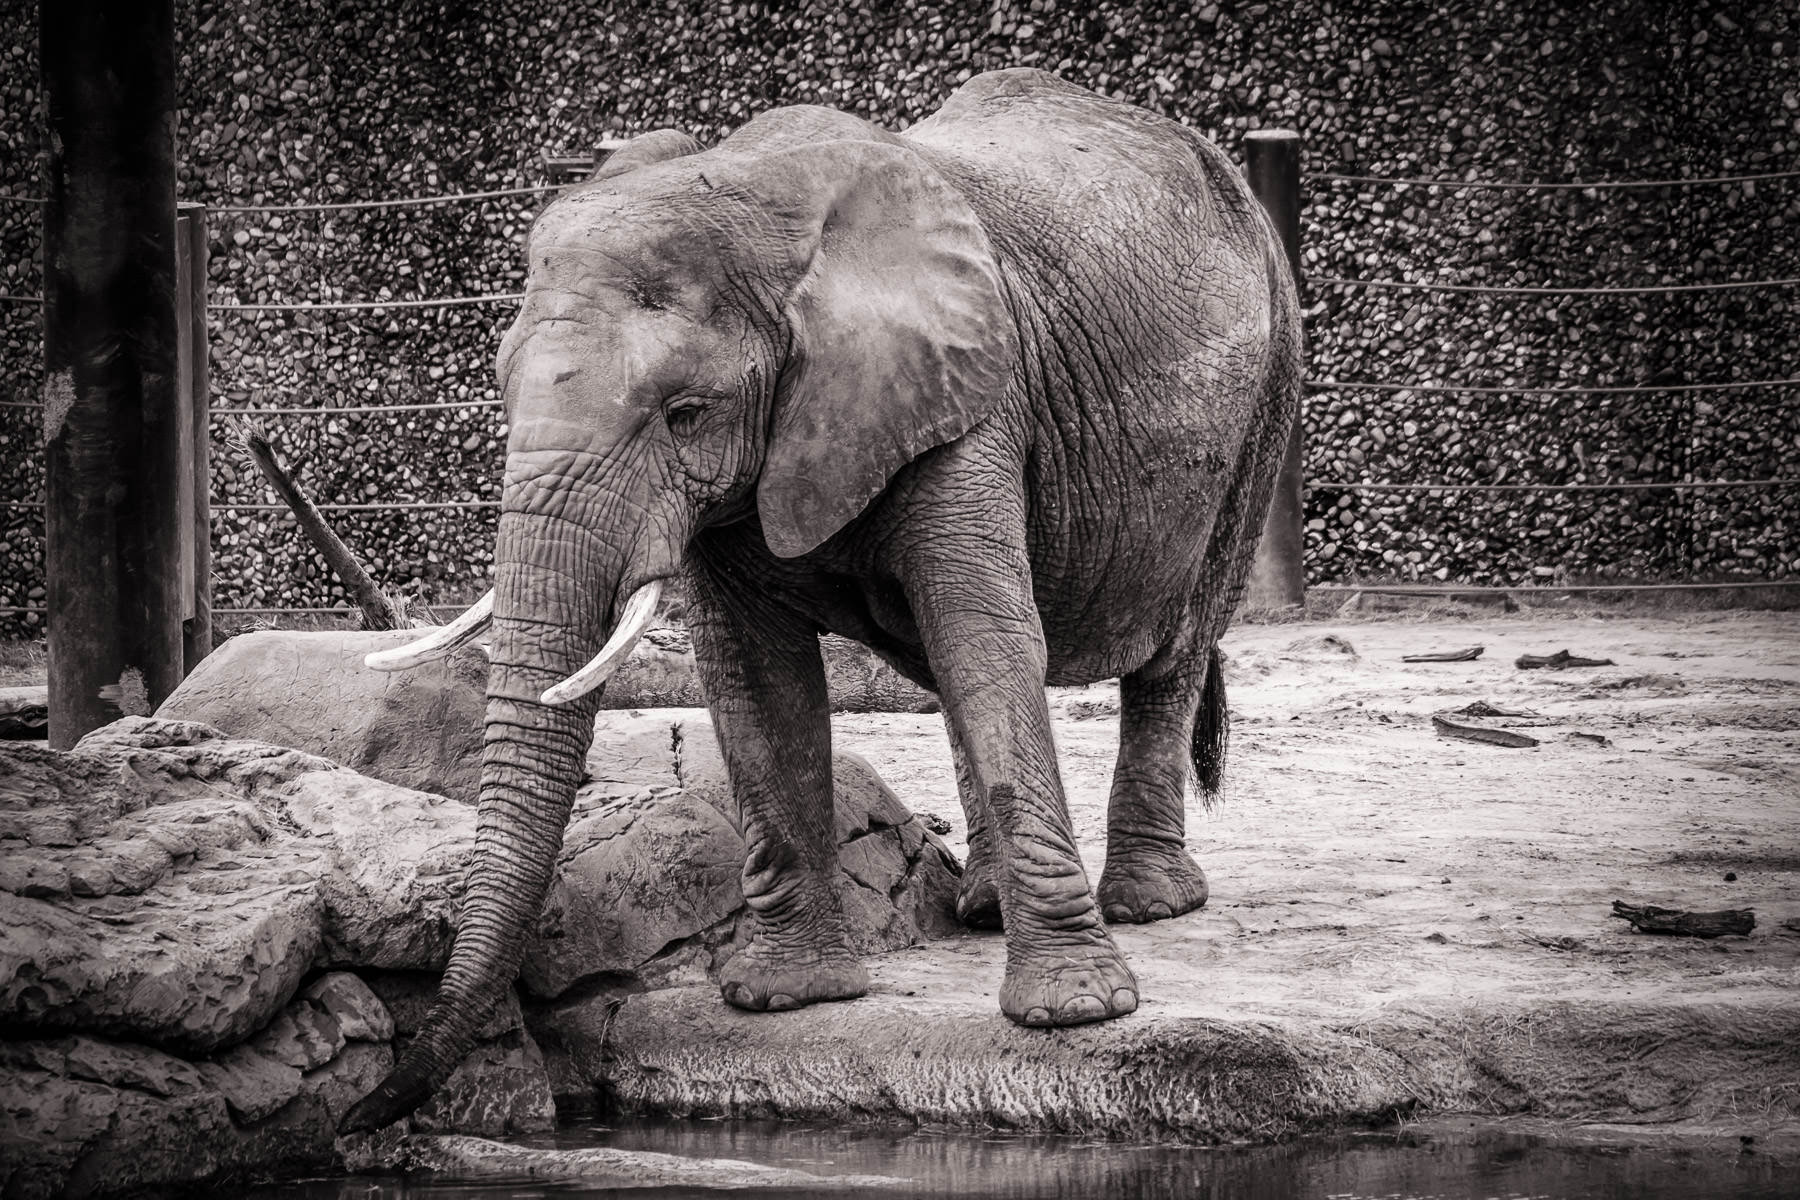 An elephant at Tyler, Texas' Caldwell Zoo pauses to take a drink of water.